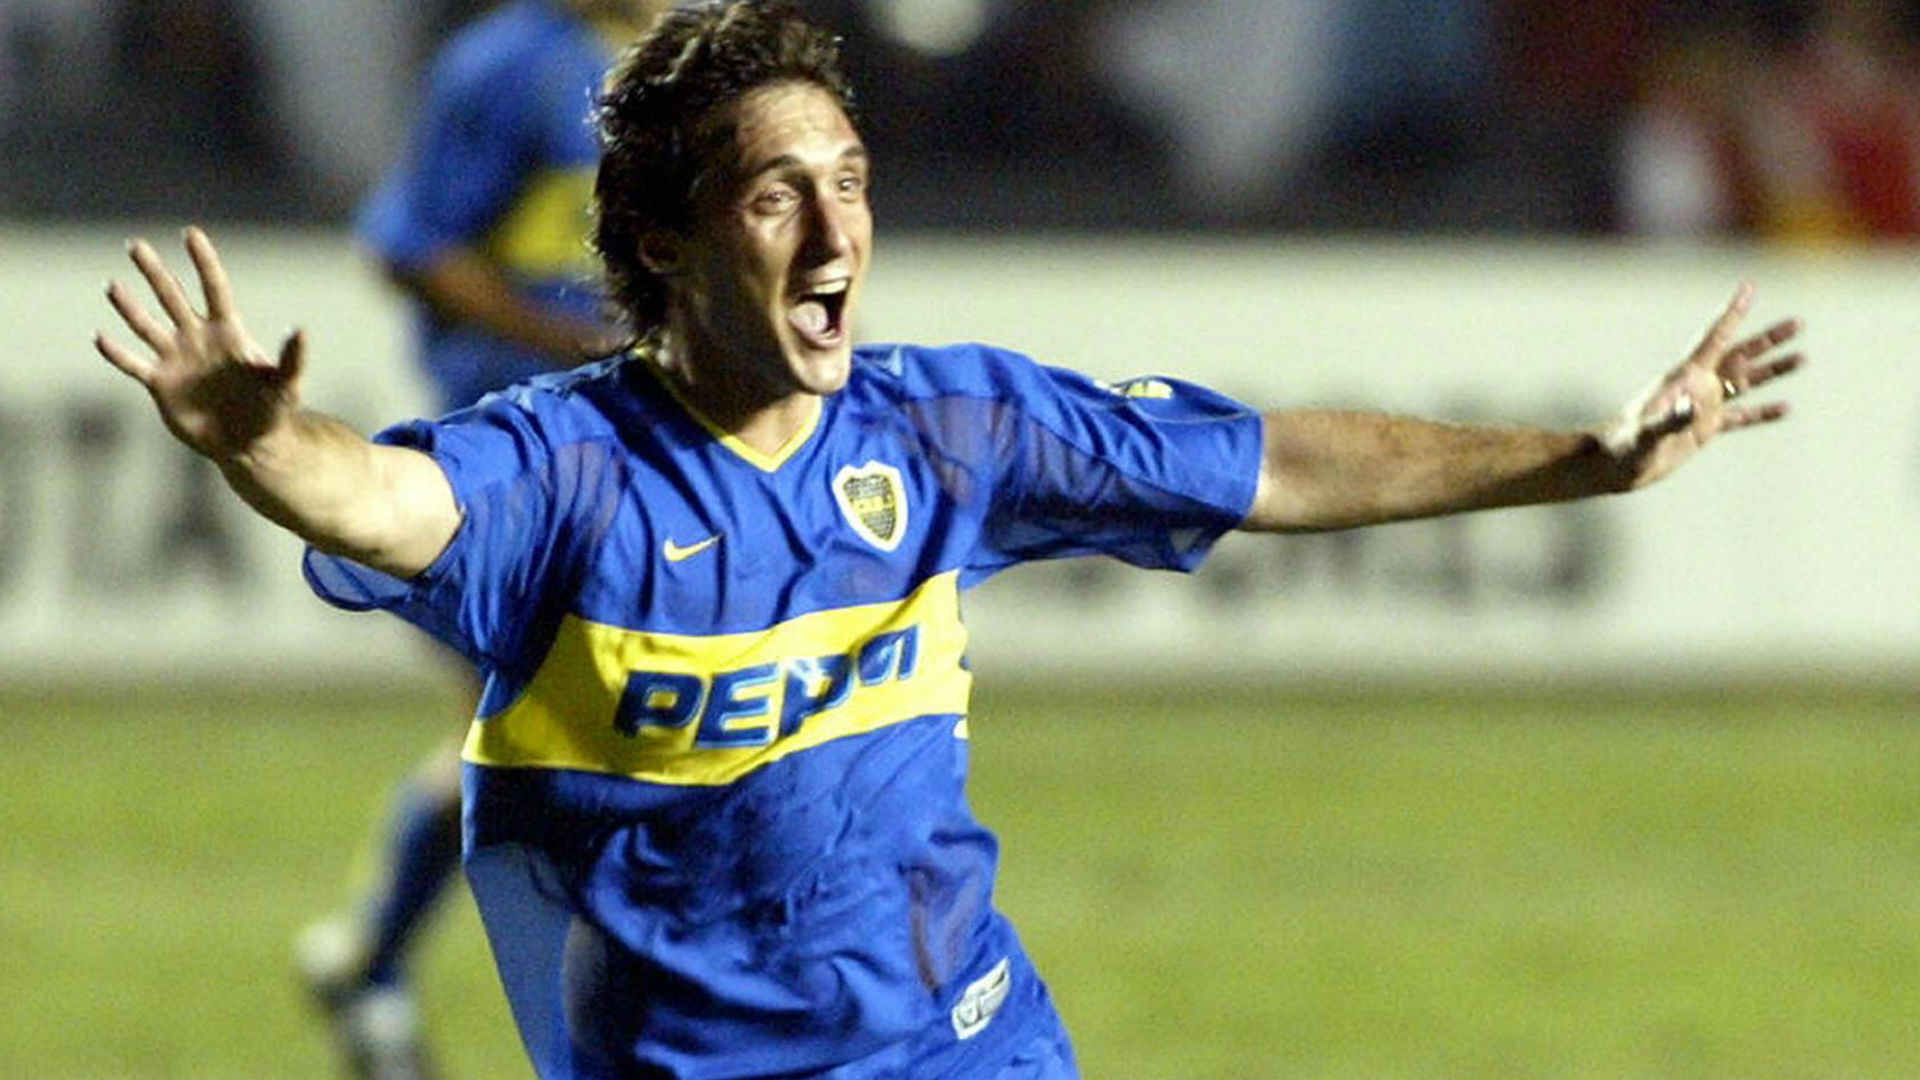 Guillermo Barros Schelotto Boca Juniors